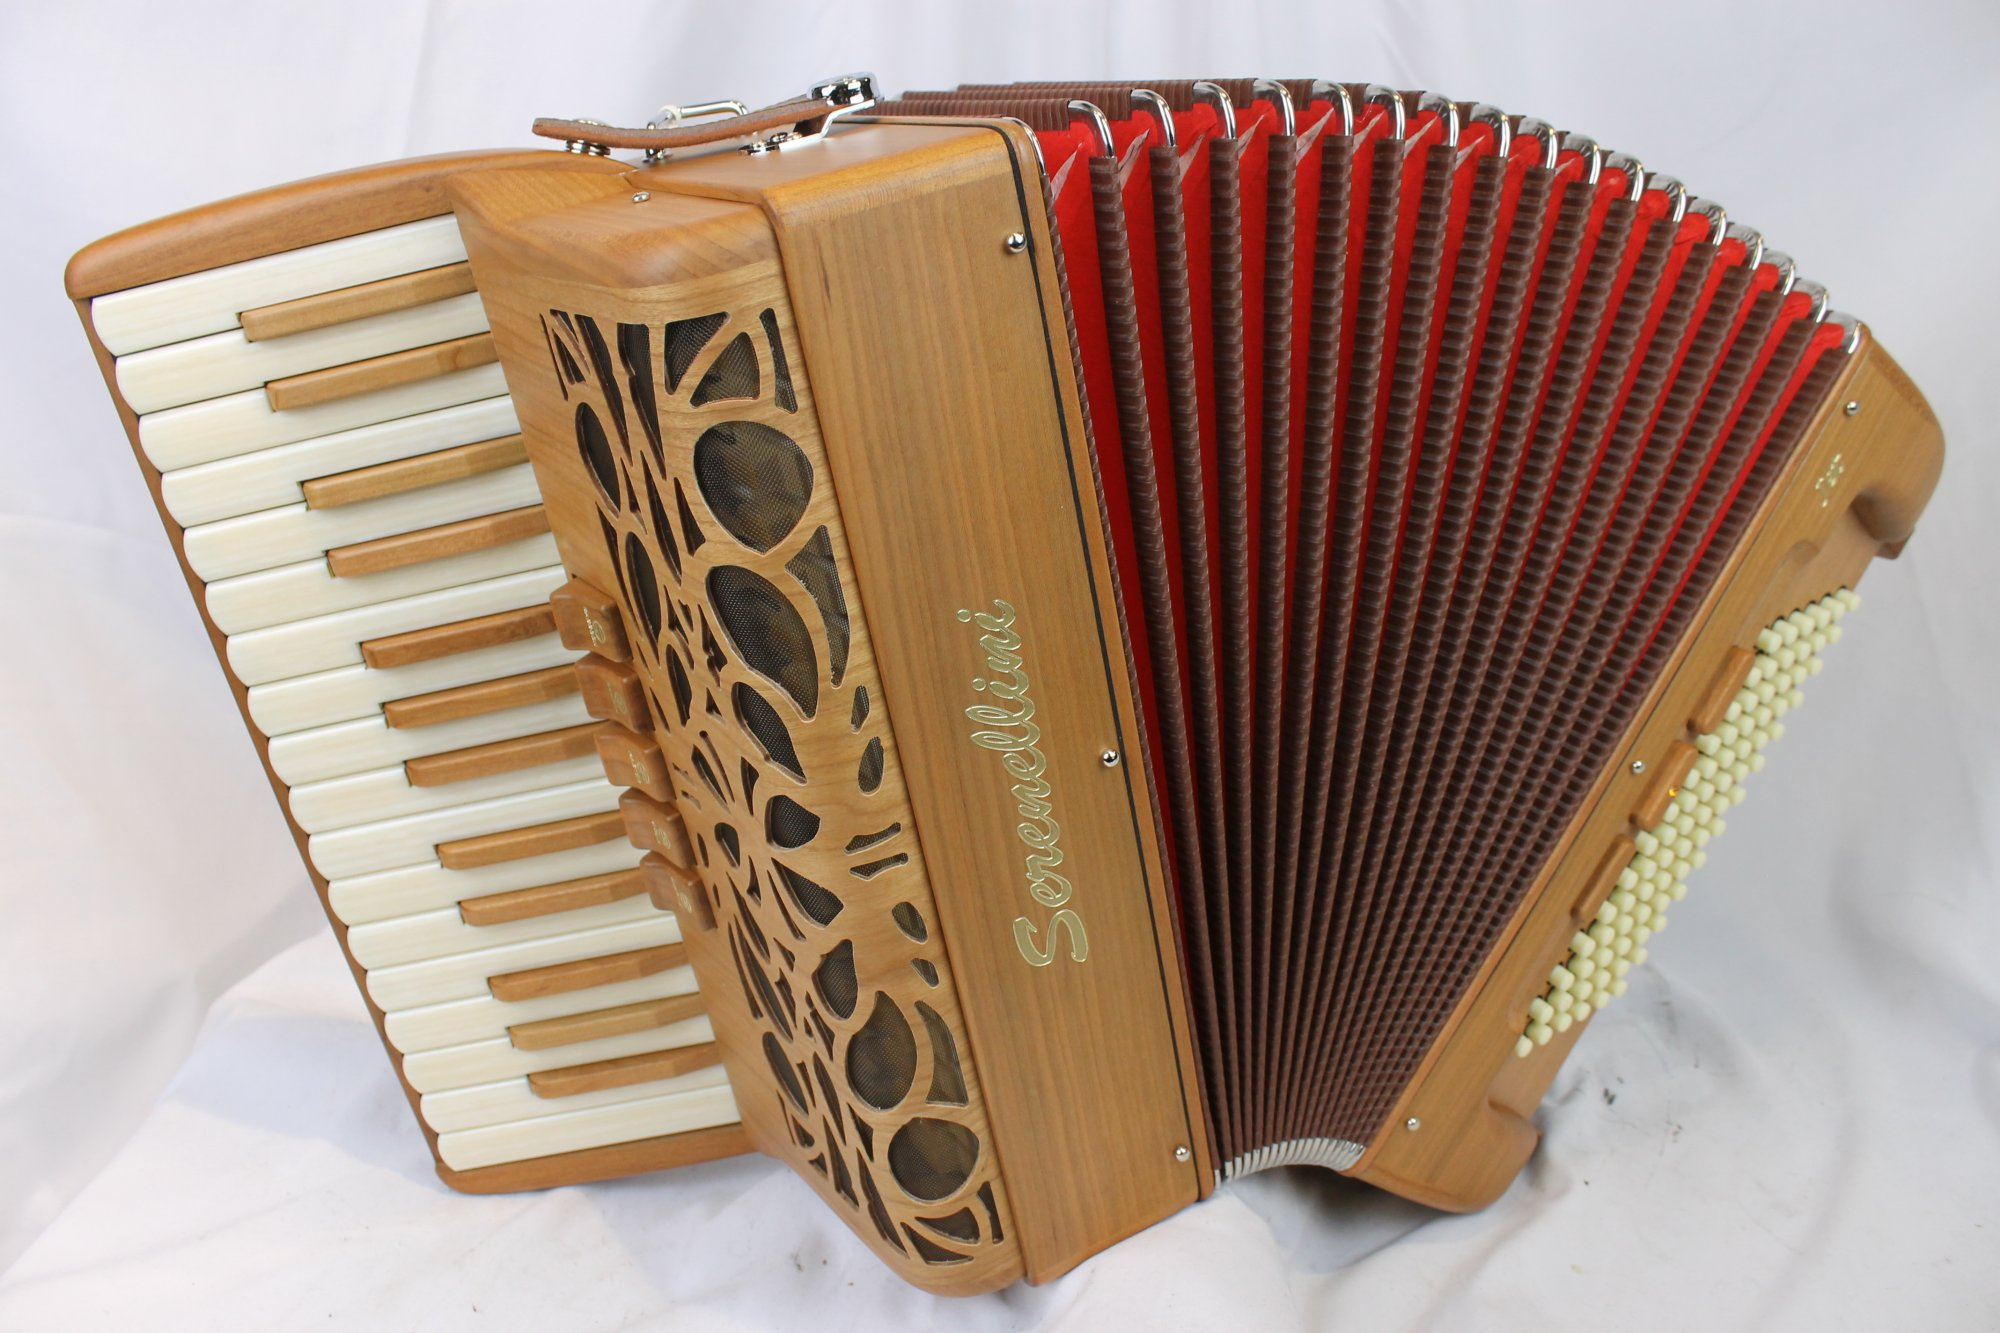 NEW Cherry Serenellini Jet Piano Accordion LMM 30 78